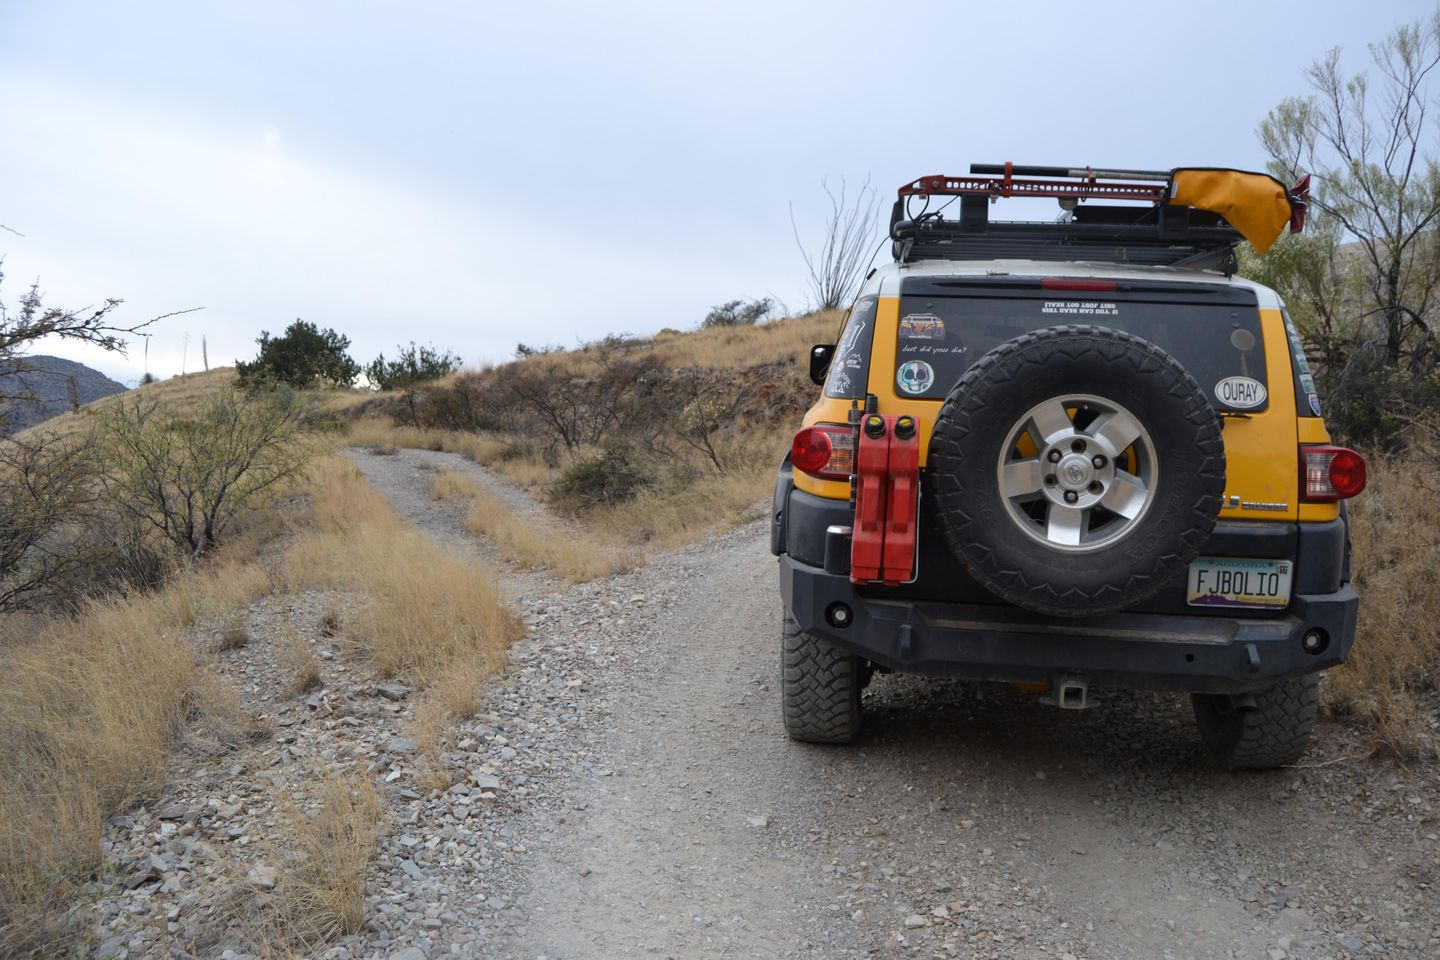 Charouleau Gap / FR# 736 - Waypoint 37: Unknown Road